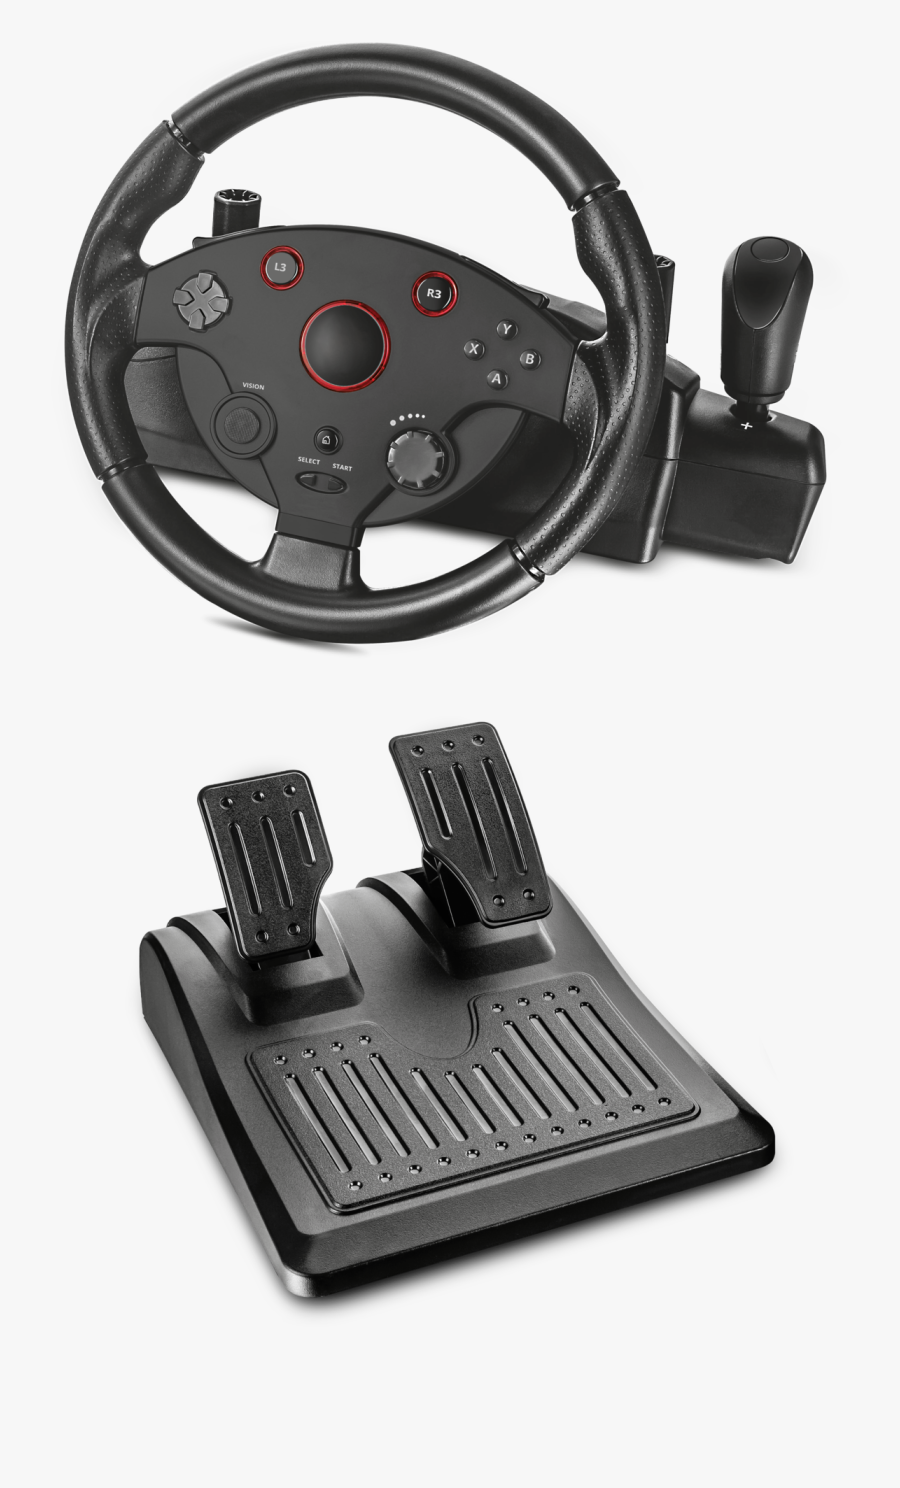 Transparent Hands On Steering Wheel Clipart - Trust Gxt 288 Racing Wheel, Transparent Clipart